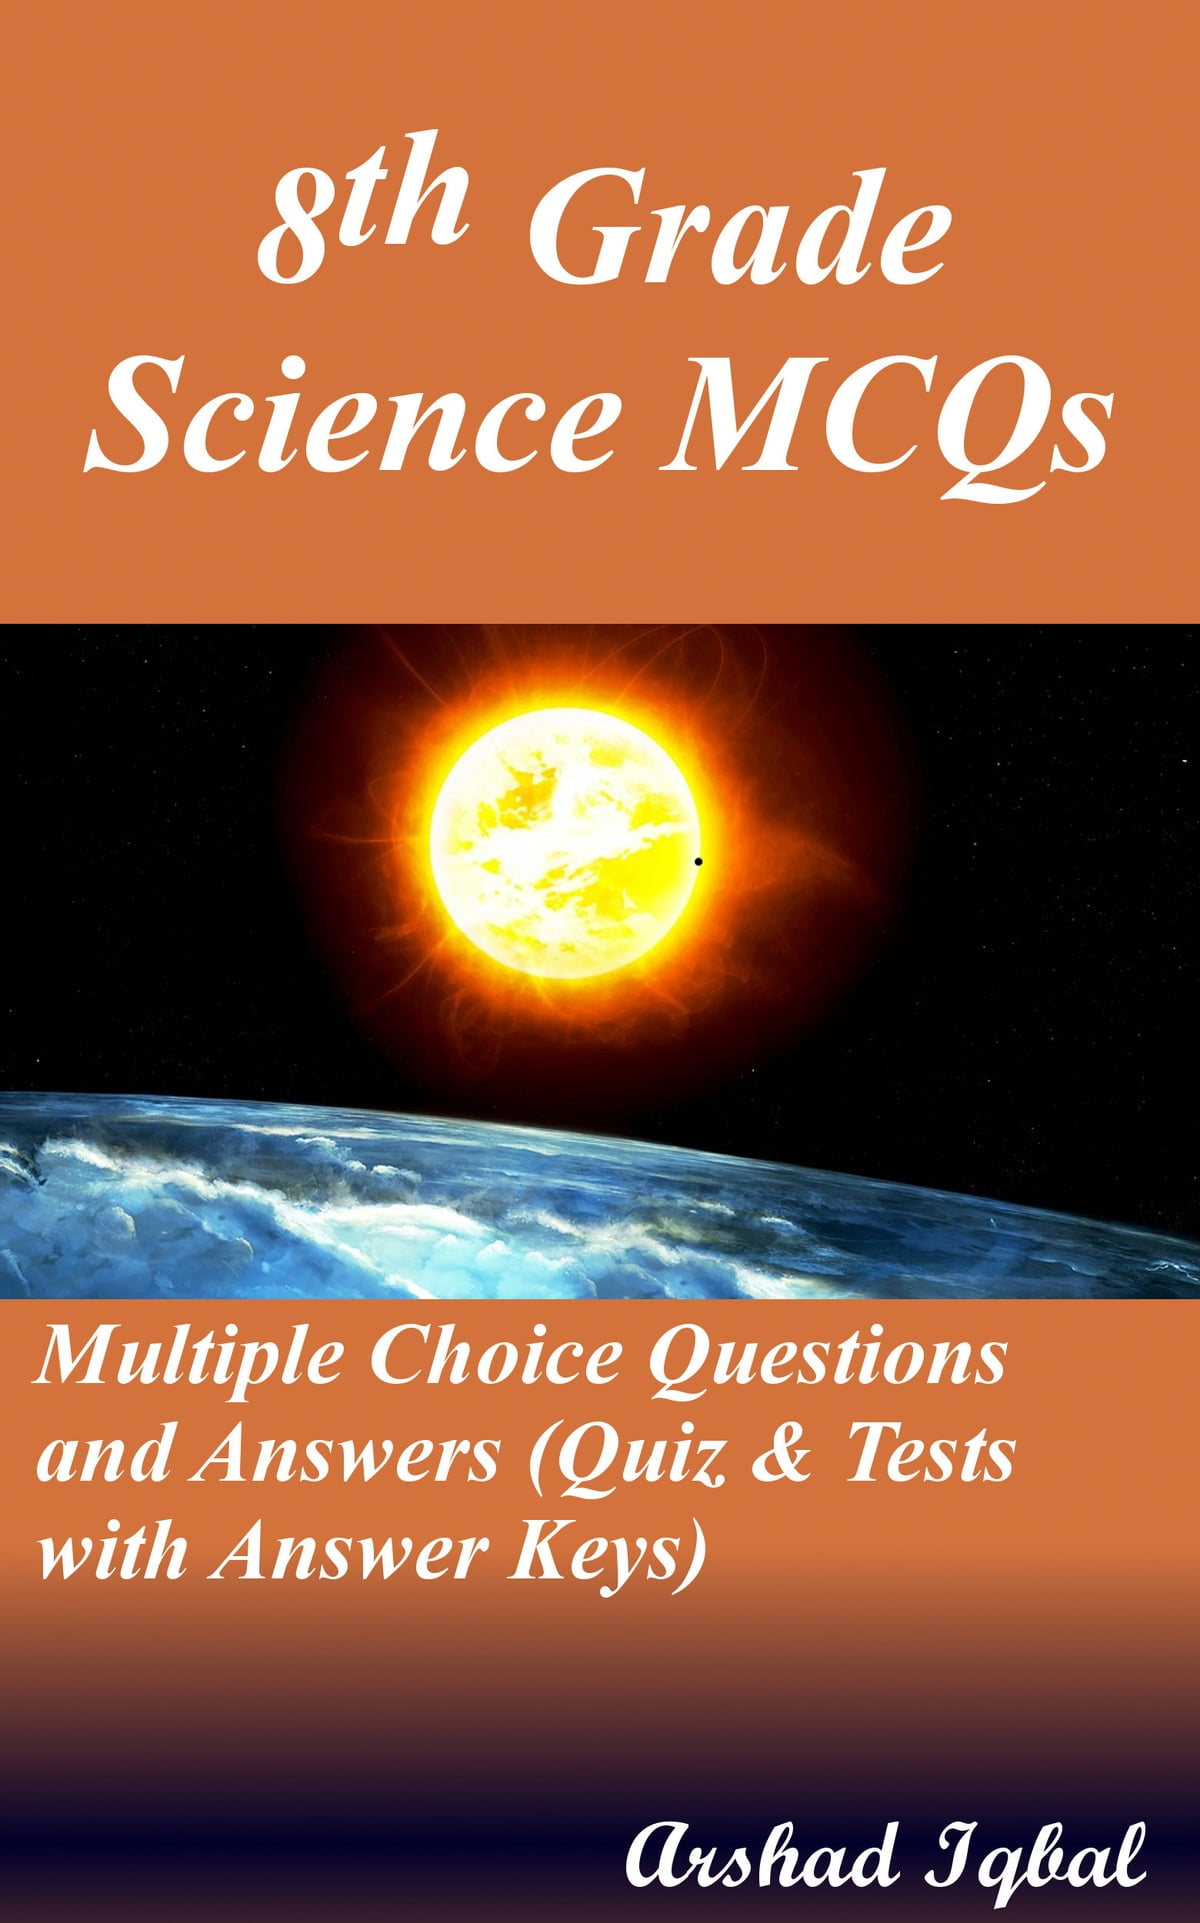 8th Grade Science Mcqs Multiple Choice Questions And